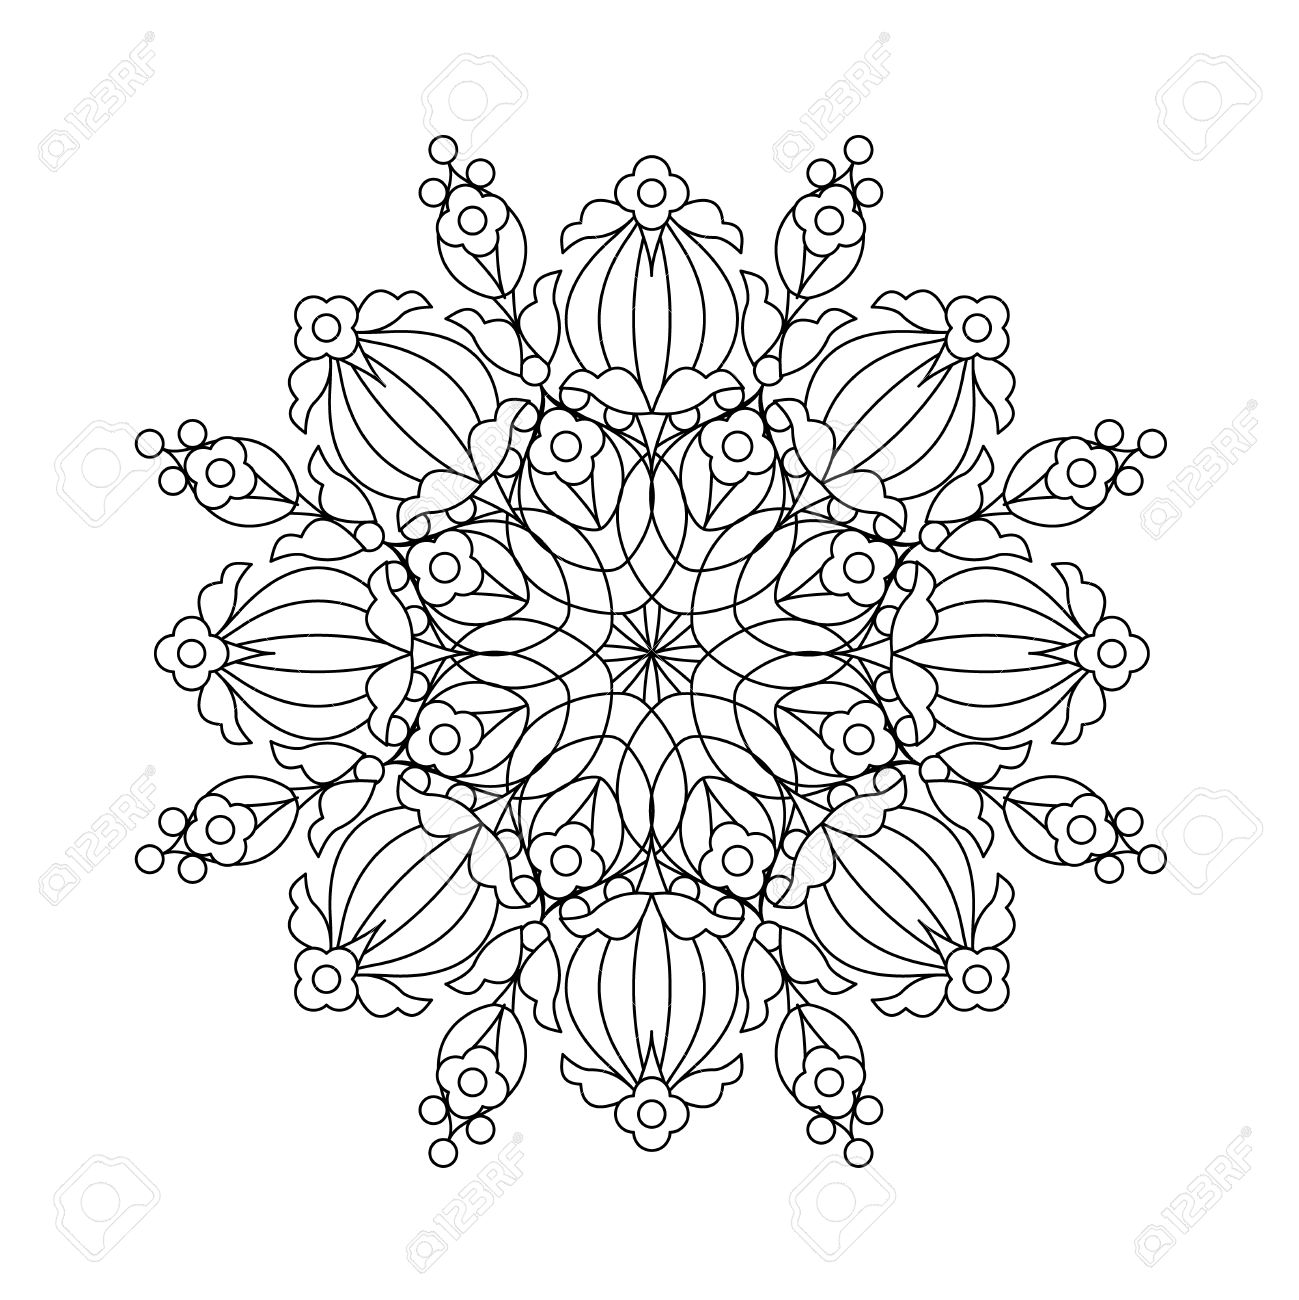 abstract mandala or whimsical snowflake line art design or coloring page stock vector - Mandala Snowflakes Coloring Pages